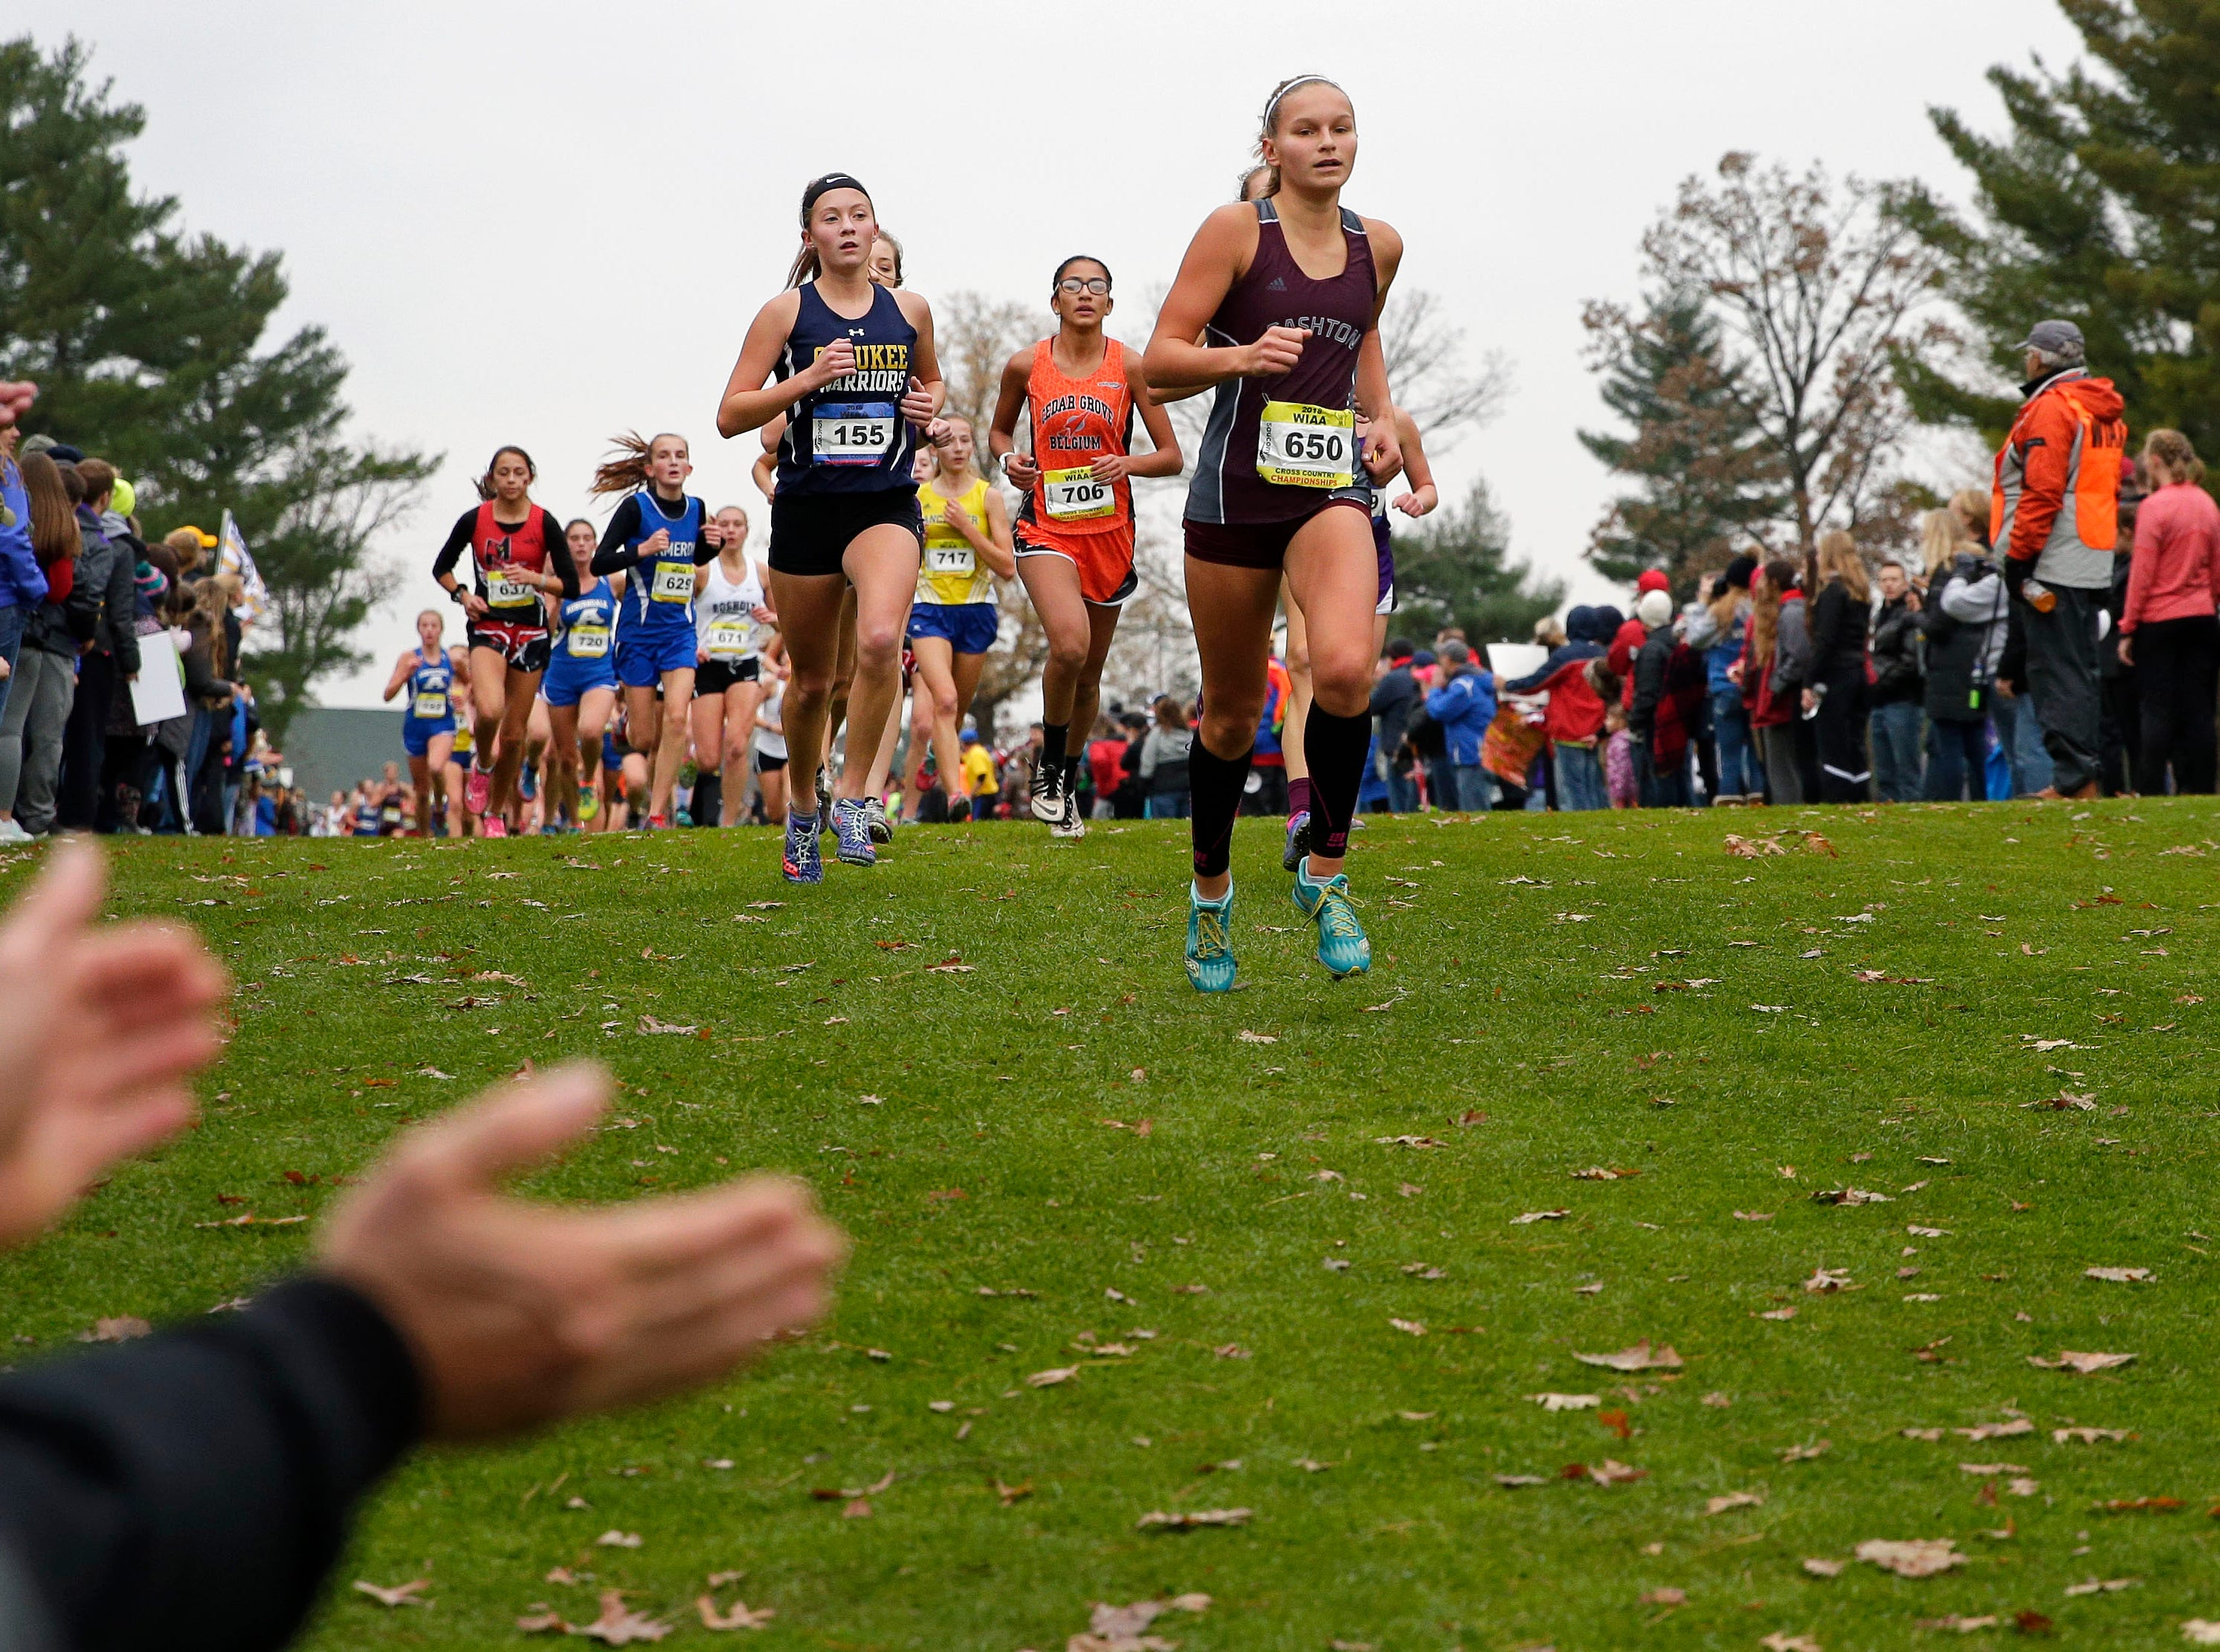 Fans cheer runners on as the 2018 WIAA Cross Country State Meet takes place Saturday, October 27, 2018, at the Ridges Golf Course in Wisconsin Rapids, Wis.Ron Page/USA TODAY NETWORK-Wisconsin